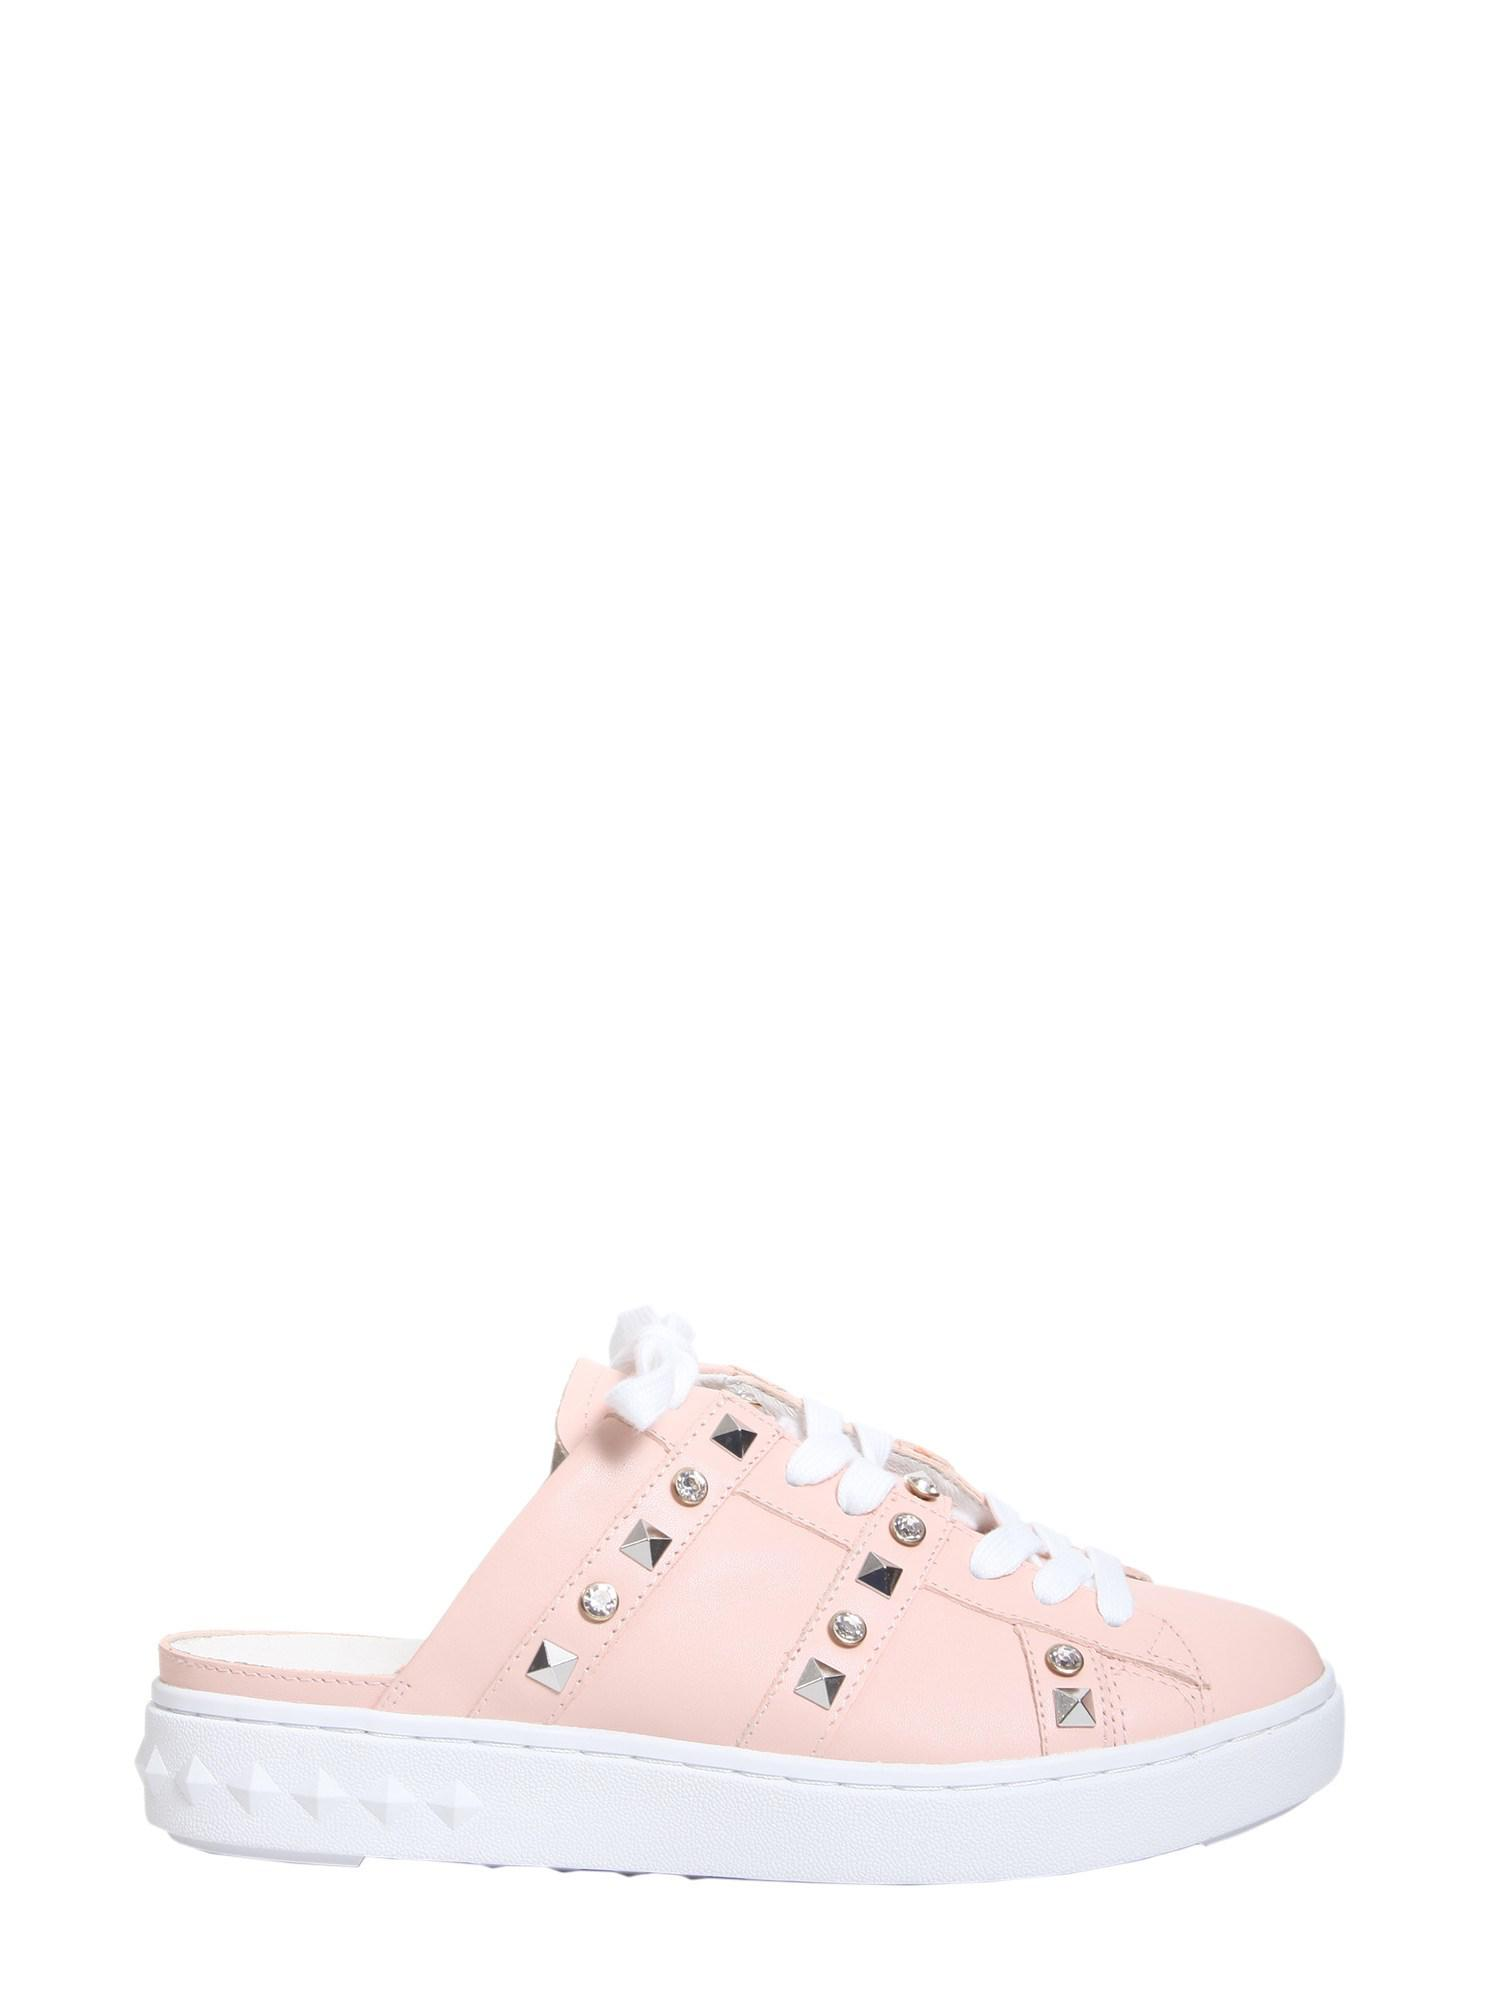 Ash - Pink Party Slip-on Leather Sneakers - Lyst. View fullscreen 31a918a1f